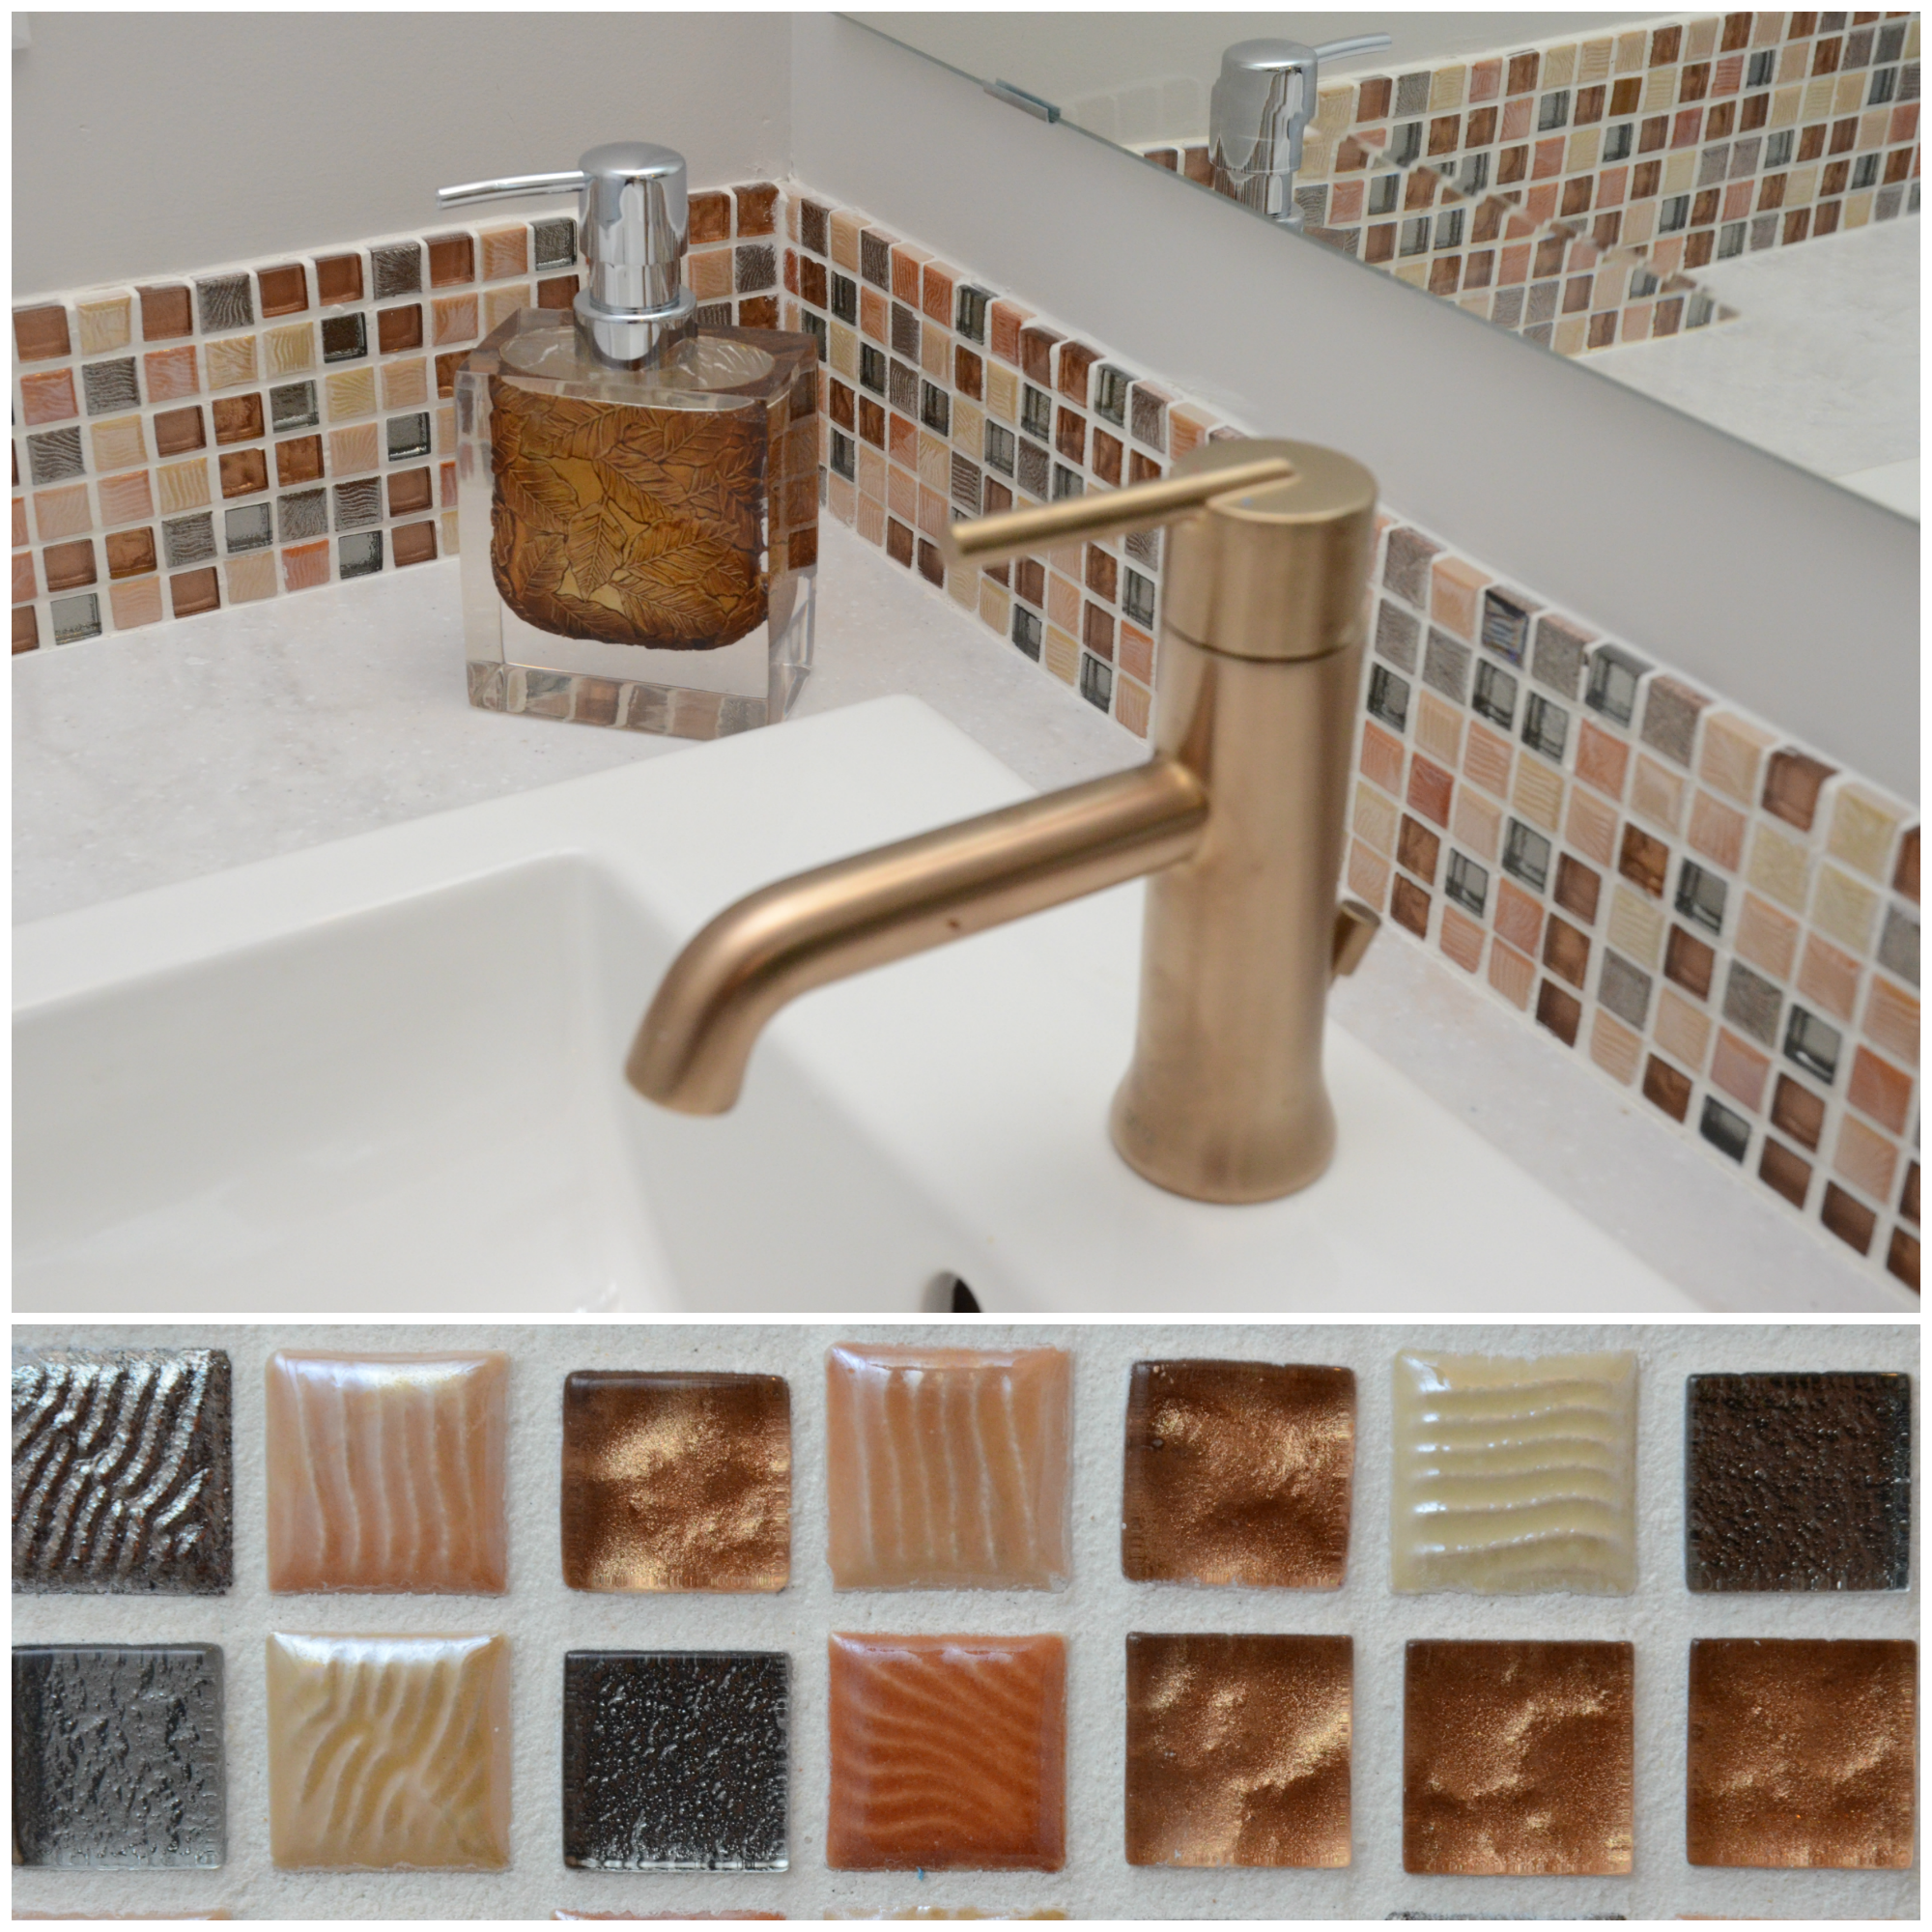 Product of the day backsplash tiles supplied by euro tile and stone product of the day backsplash tiles supplied by euro tile and stone dailygadgetfo Image collections